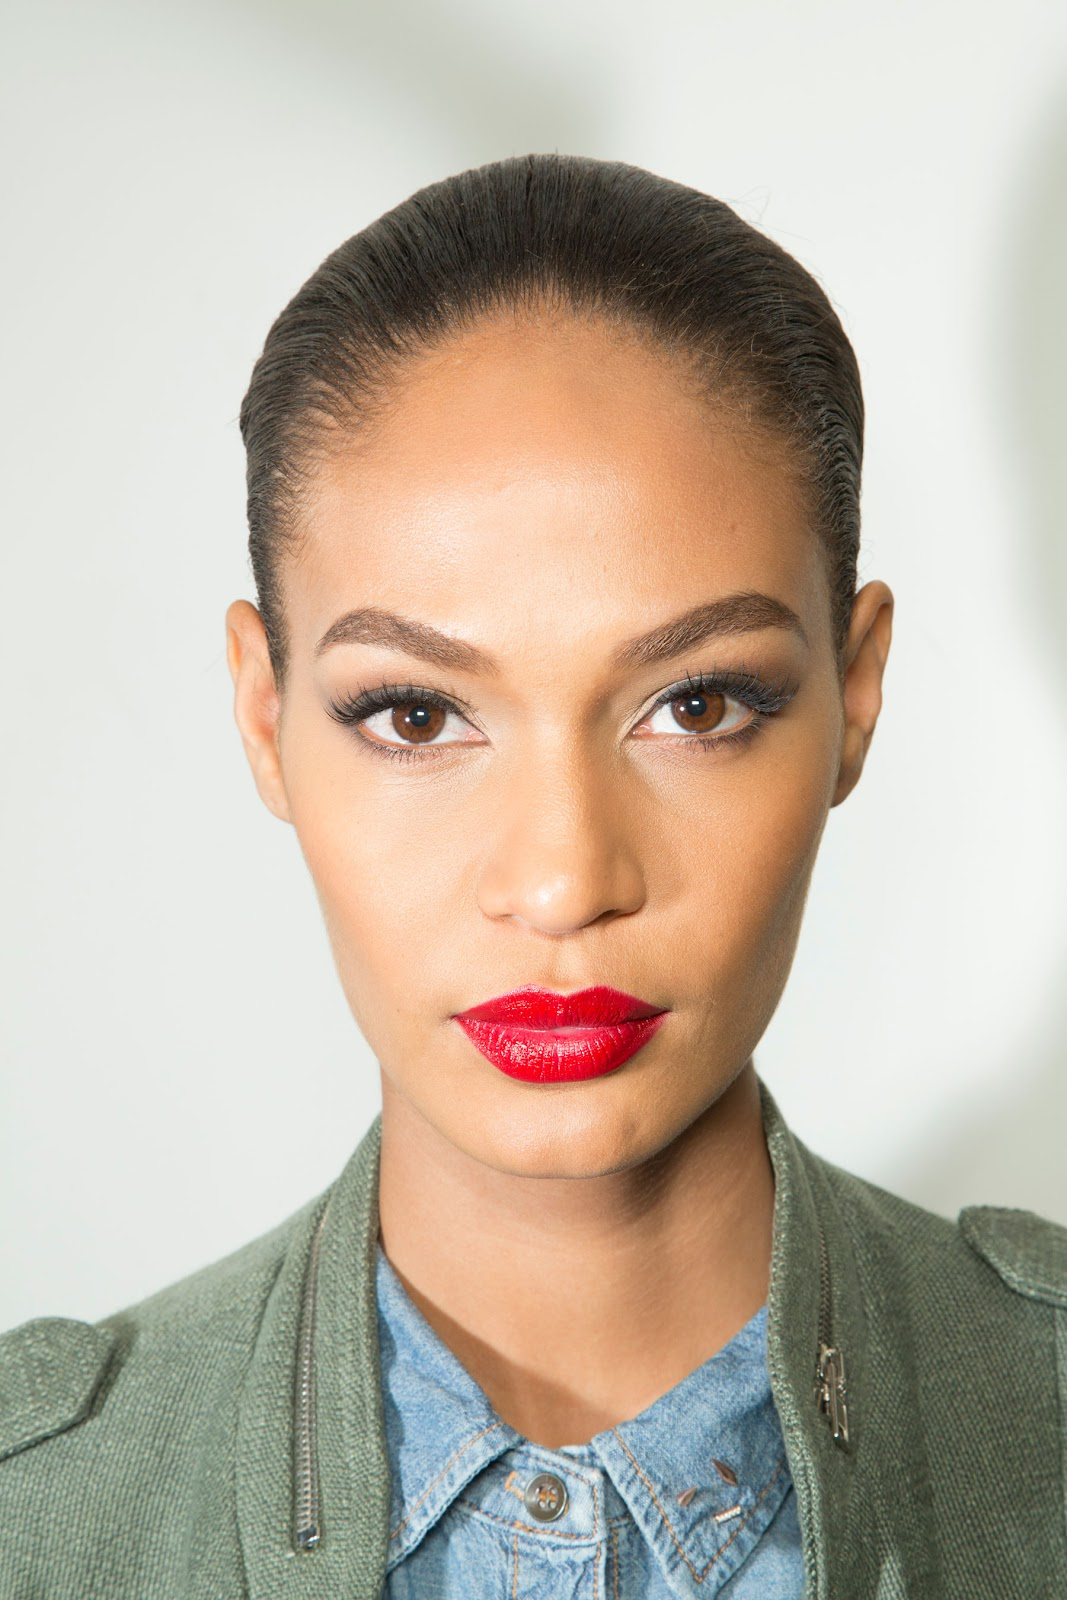 Joan Smalls At Topshop Fashion Show At London Fashion Week: Joan Smalls Jean Paul Gaultier S/S 2013 HQ +Backstage